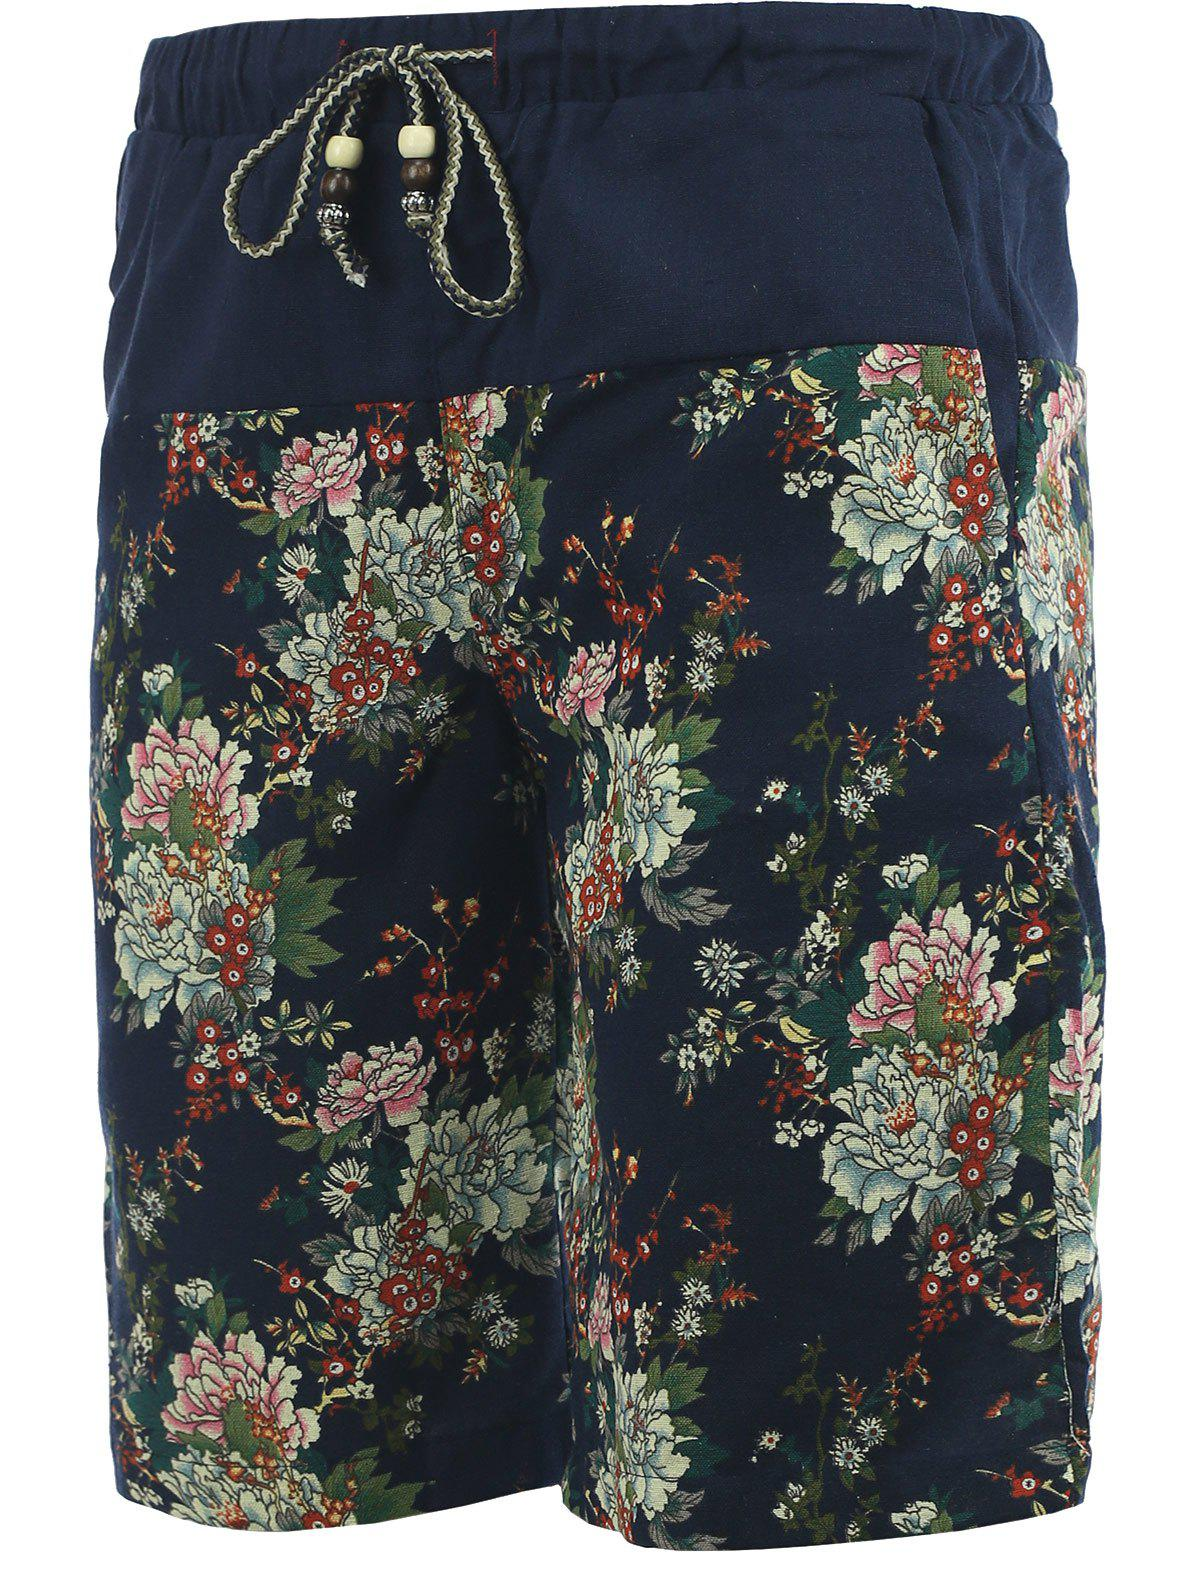 Drawstring Foral Printed Spliced Men's Cuffed Board Shorts - BLACK 5XL